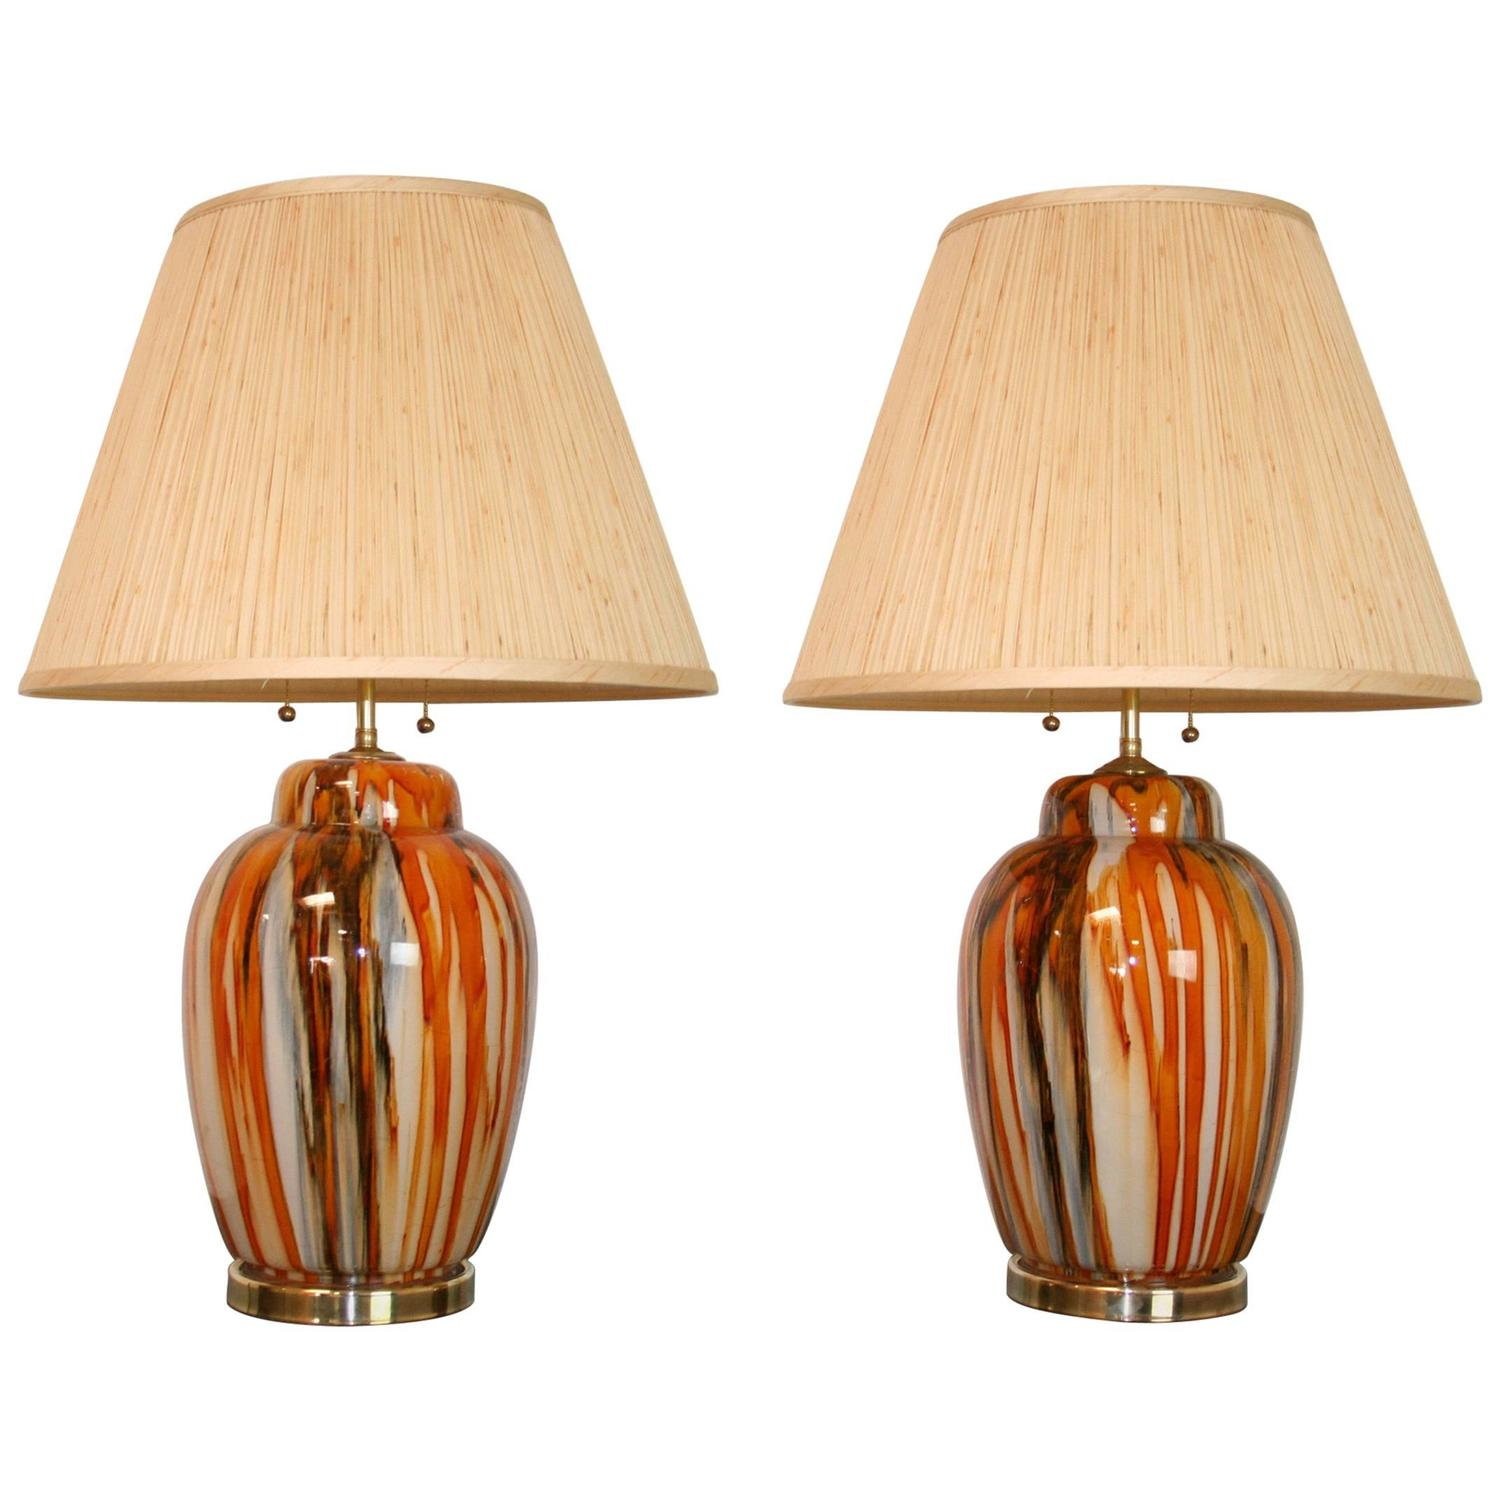 pair of italian modern glass lamps for sale at 1stdibs. Black Bedroom Furniture Sets. Home Design Ideas